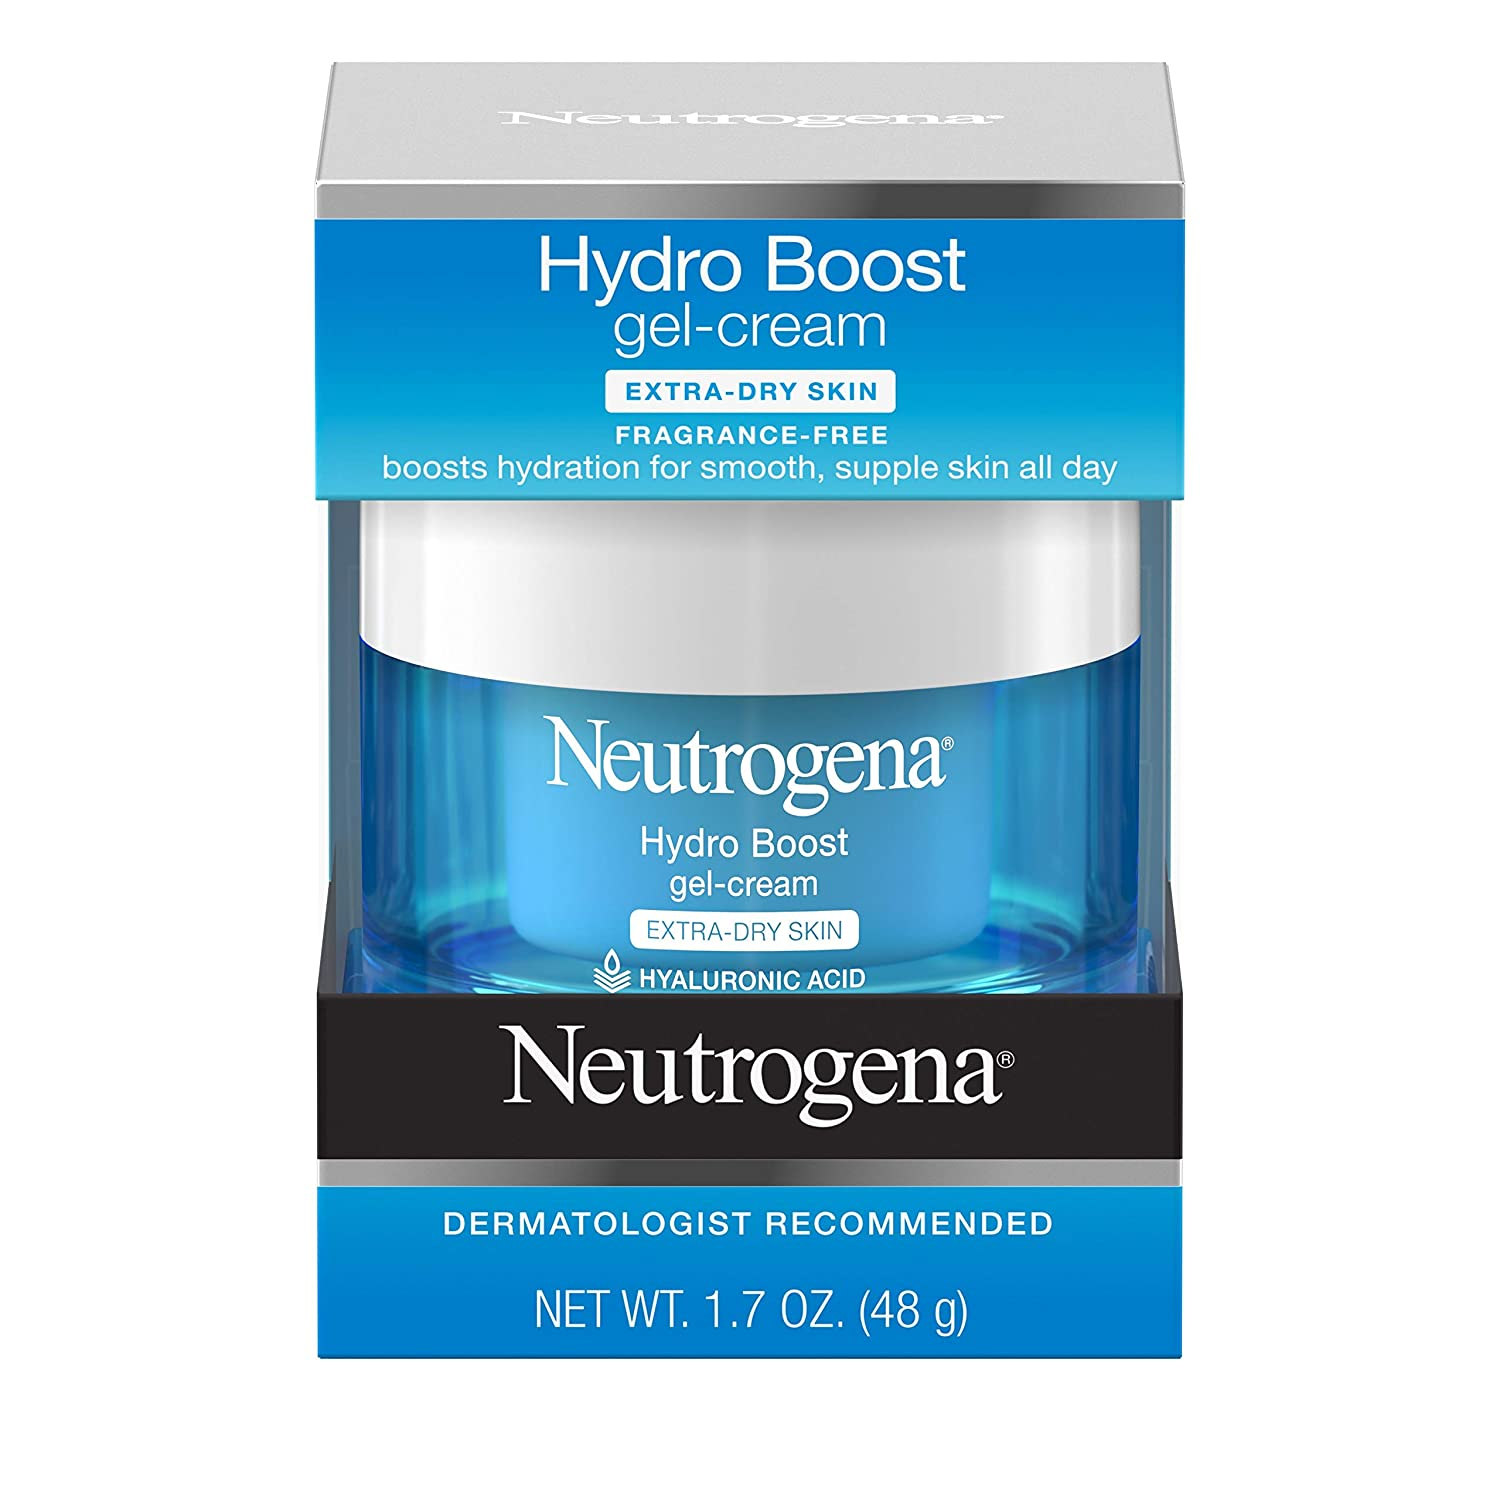 Neutrogena Hydro Boost Hyaluronic Acid Hydrating Face Moisturizer Gel-Cream to Hydrate and Smooth Extra-Dry Skin